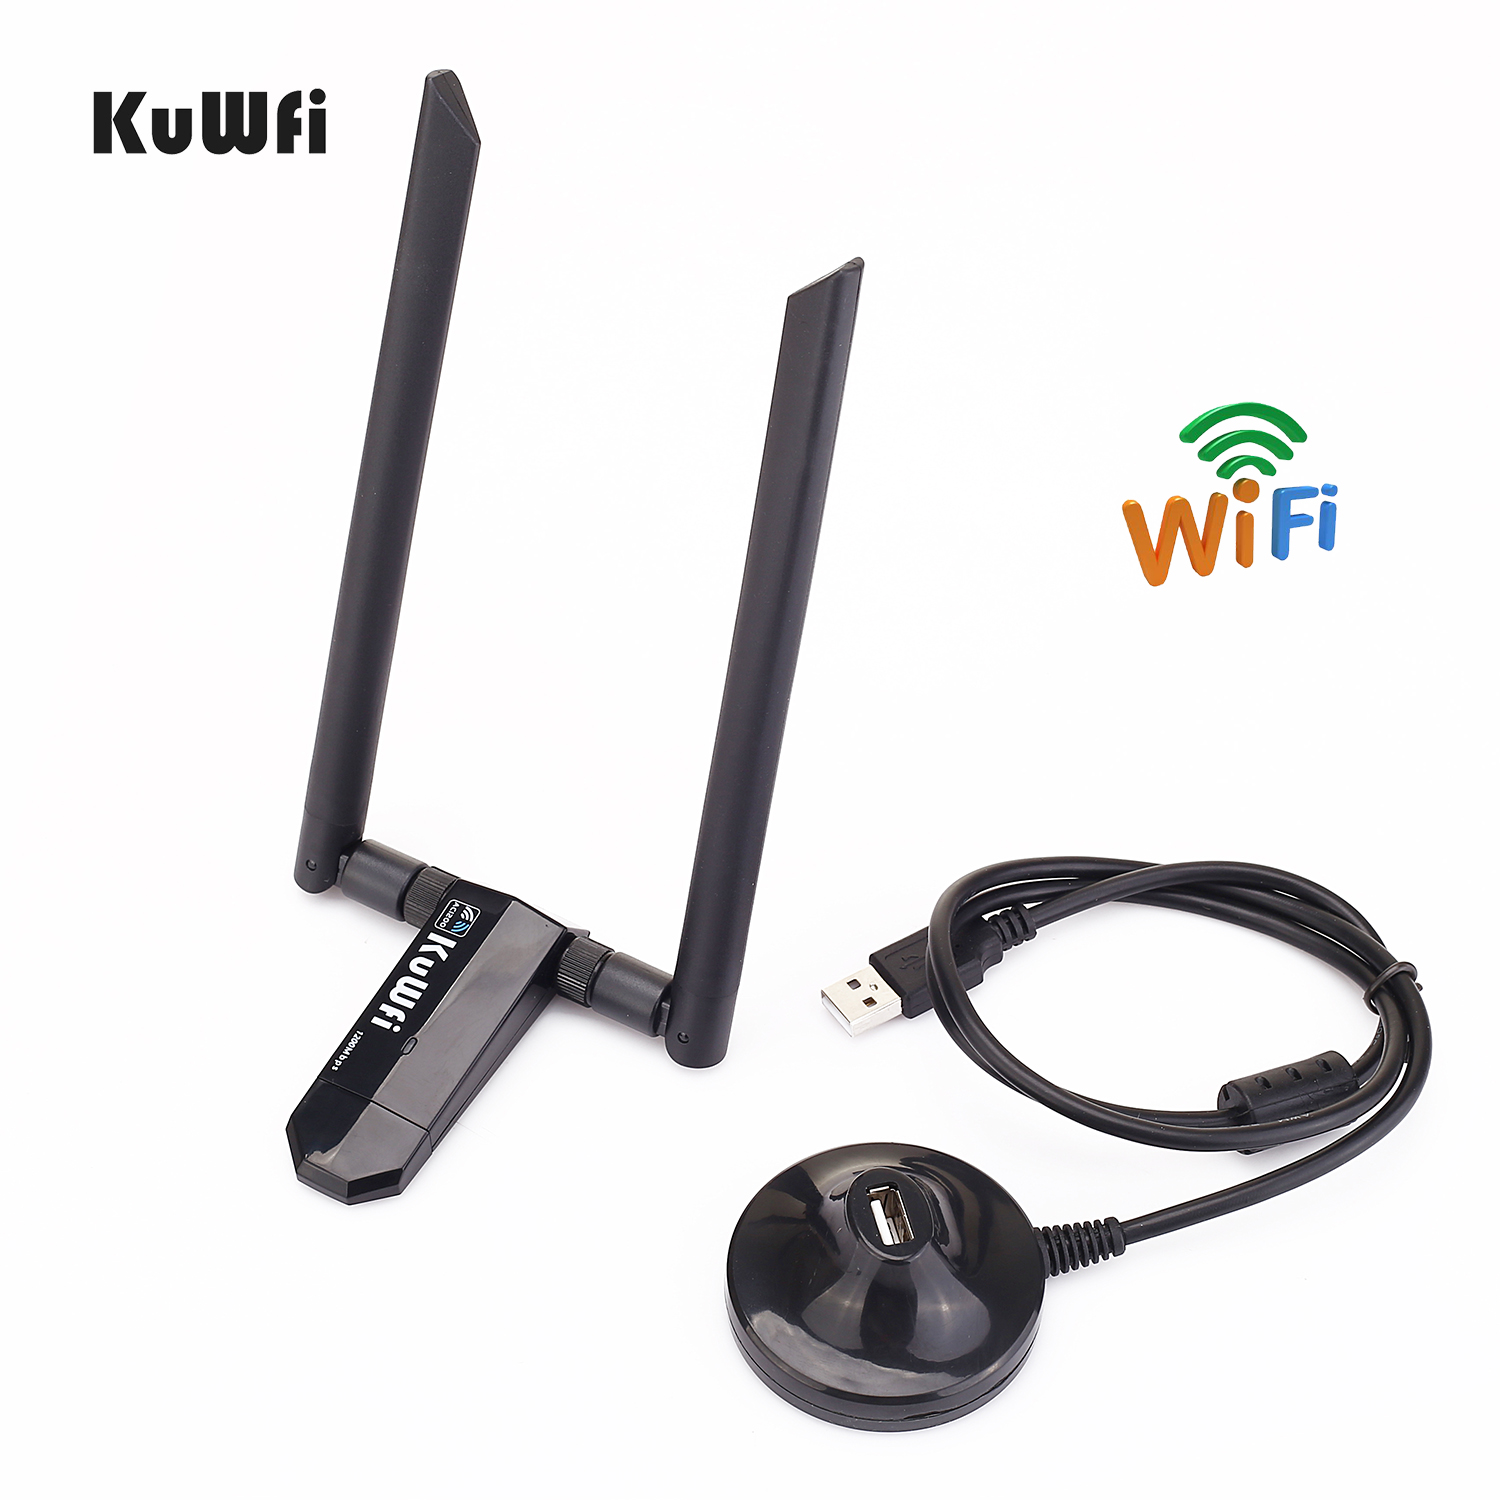 KuWFi Mini USB3.0 Wifi Adapter 1200Mbps 5dBi Antenna PC USB Wi-fi Receiver Dual Band High Speed Wireless Network Card